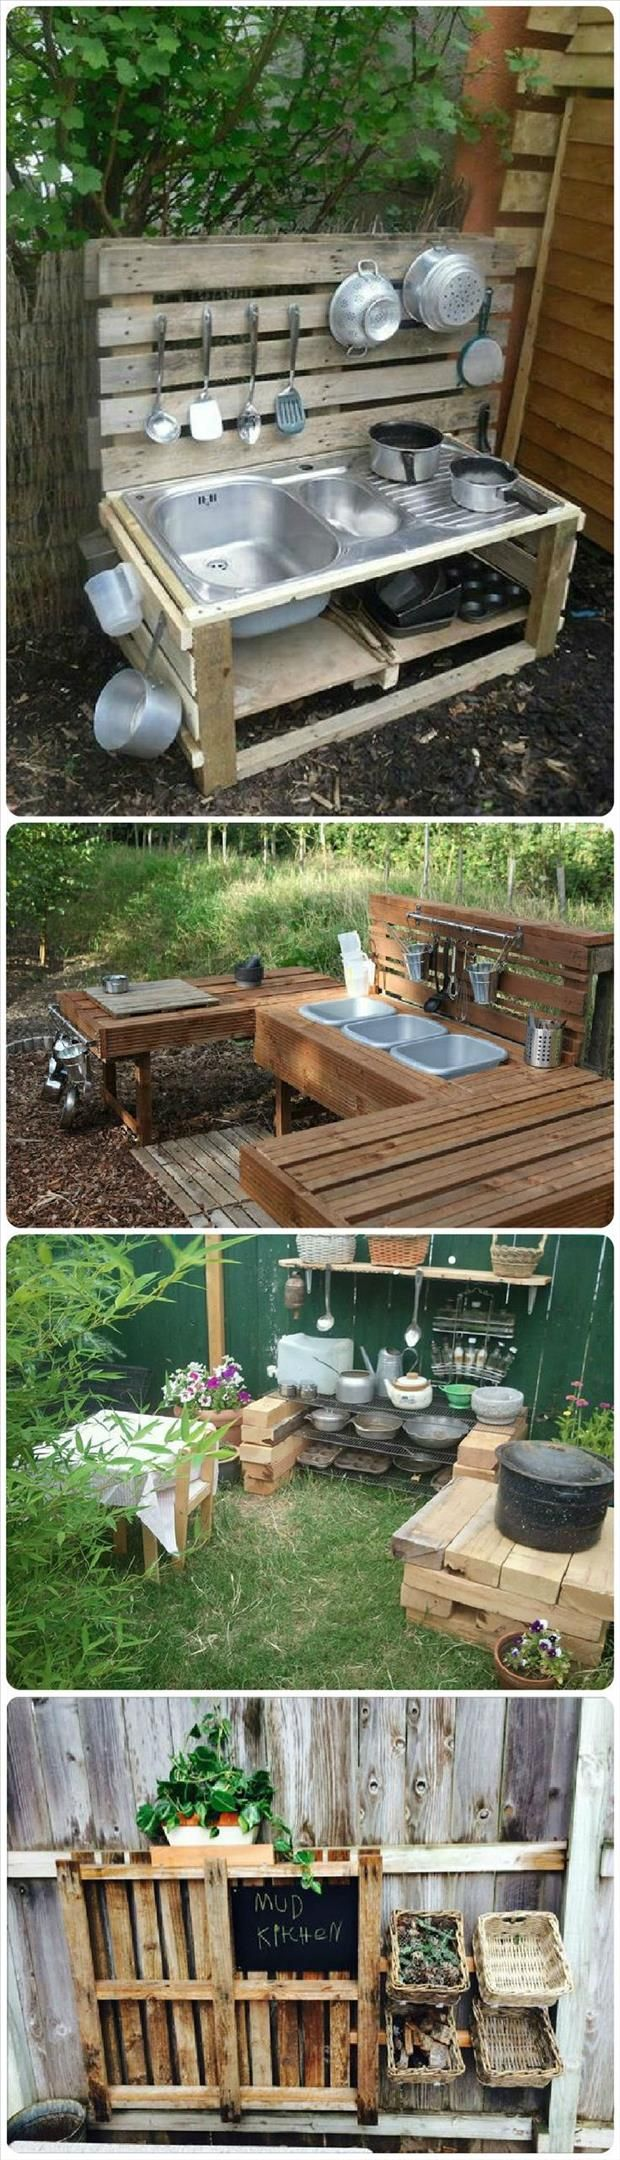 Amazing Uses For Old Pallets - 20 Pics #pin_it #furniture #DIY #wood #pallet @mundodascasas www.mundodascasas.com.br